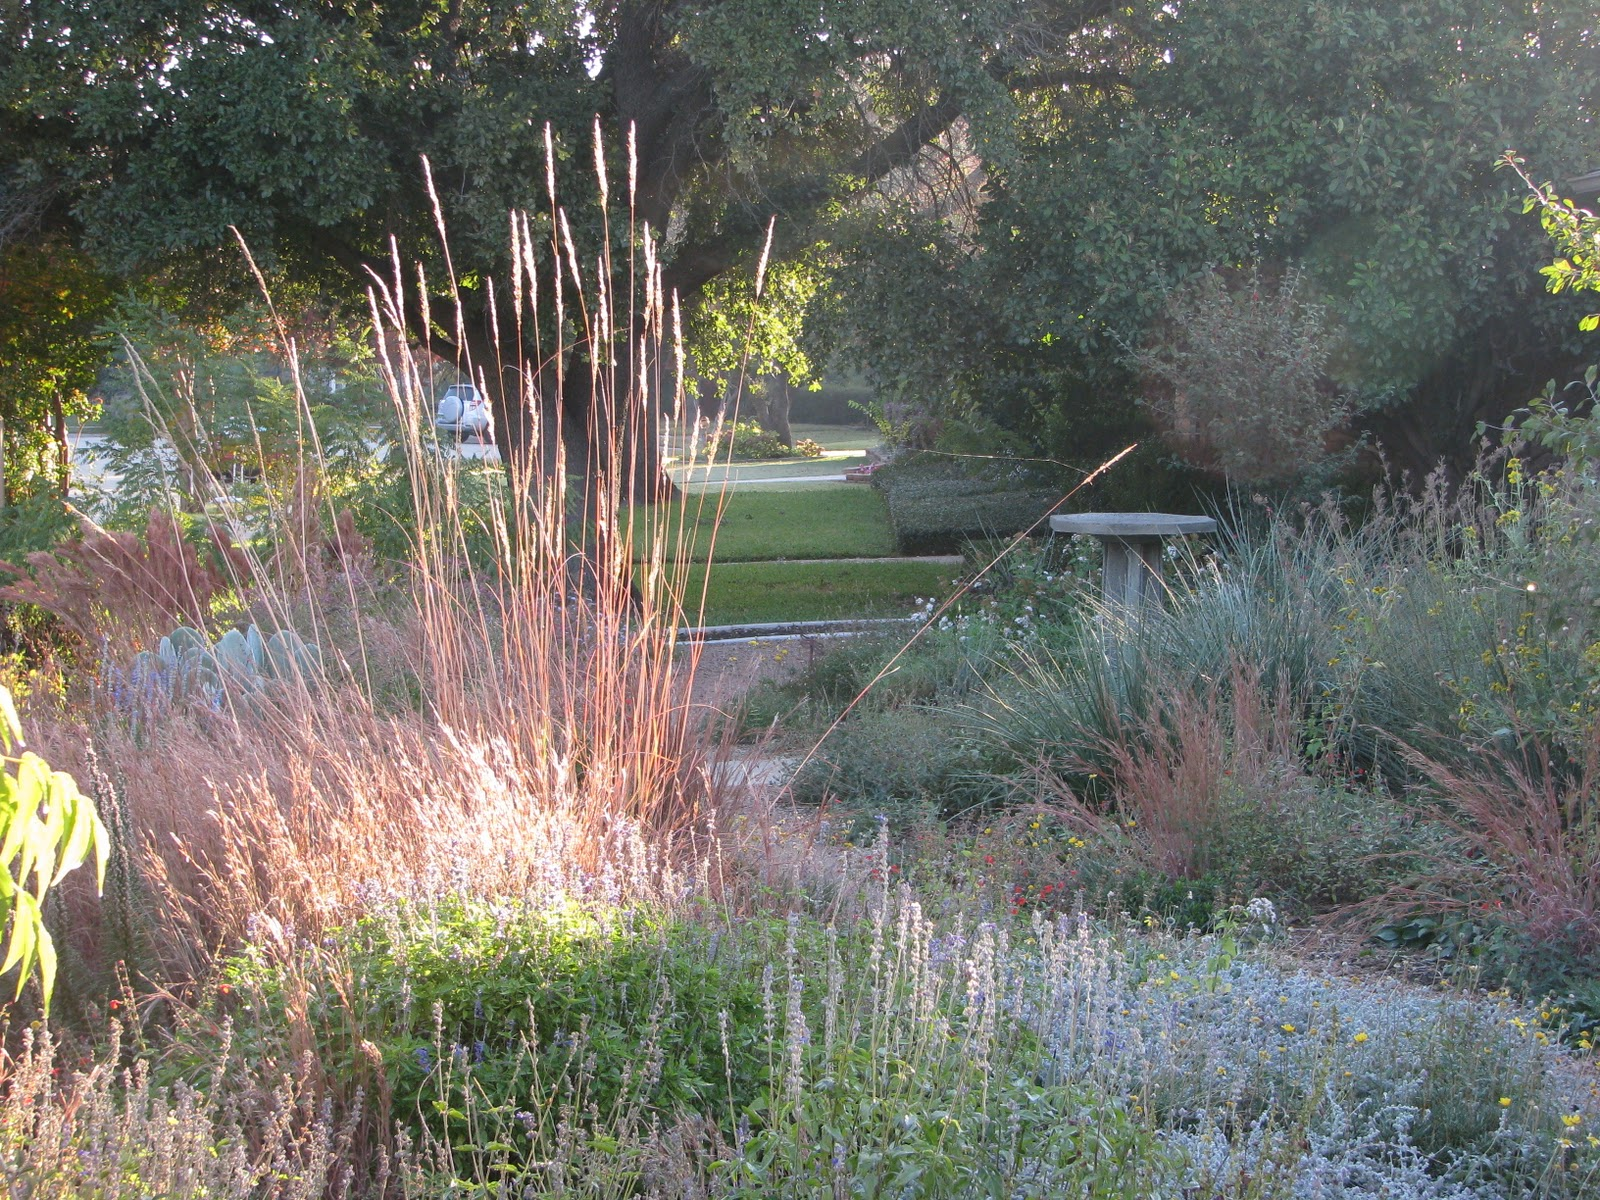 garden prairie hindu personals This prairie-inspired garden is a catalog of plants that midwestern settlers would have found when they arrived false blue indigo, wild petunia, prairie blazing star, and indian grass are just a sample in this varied garden.